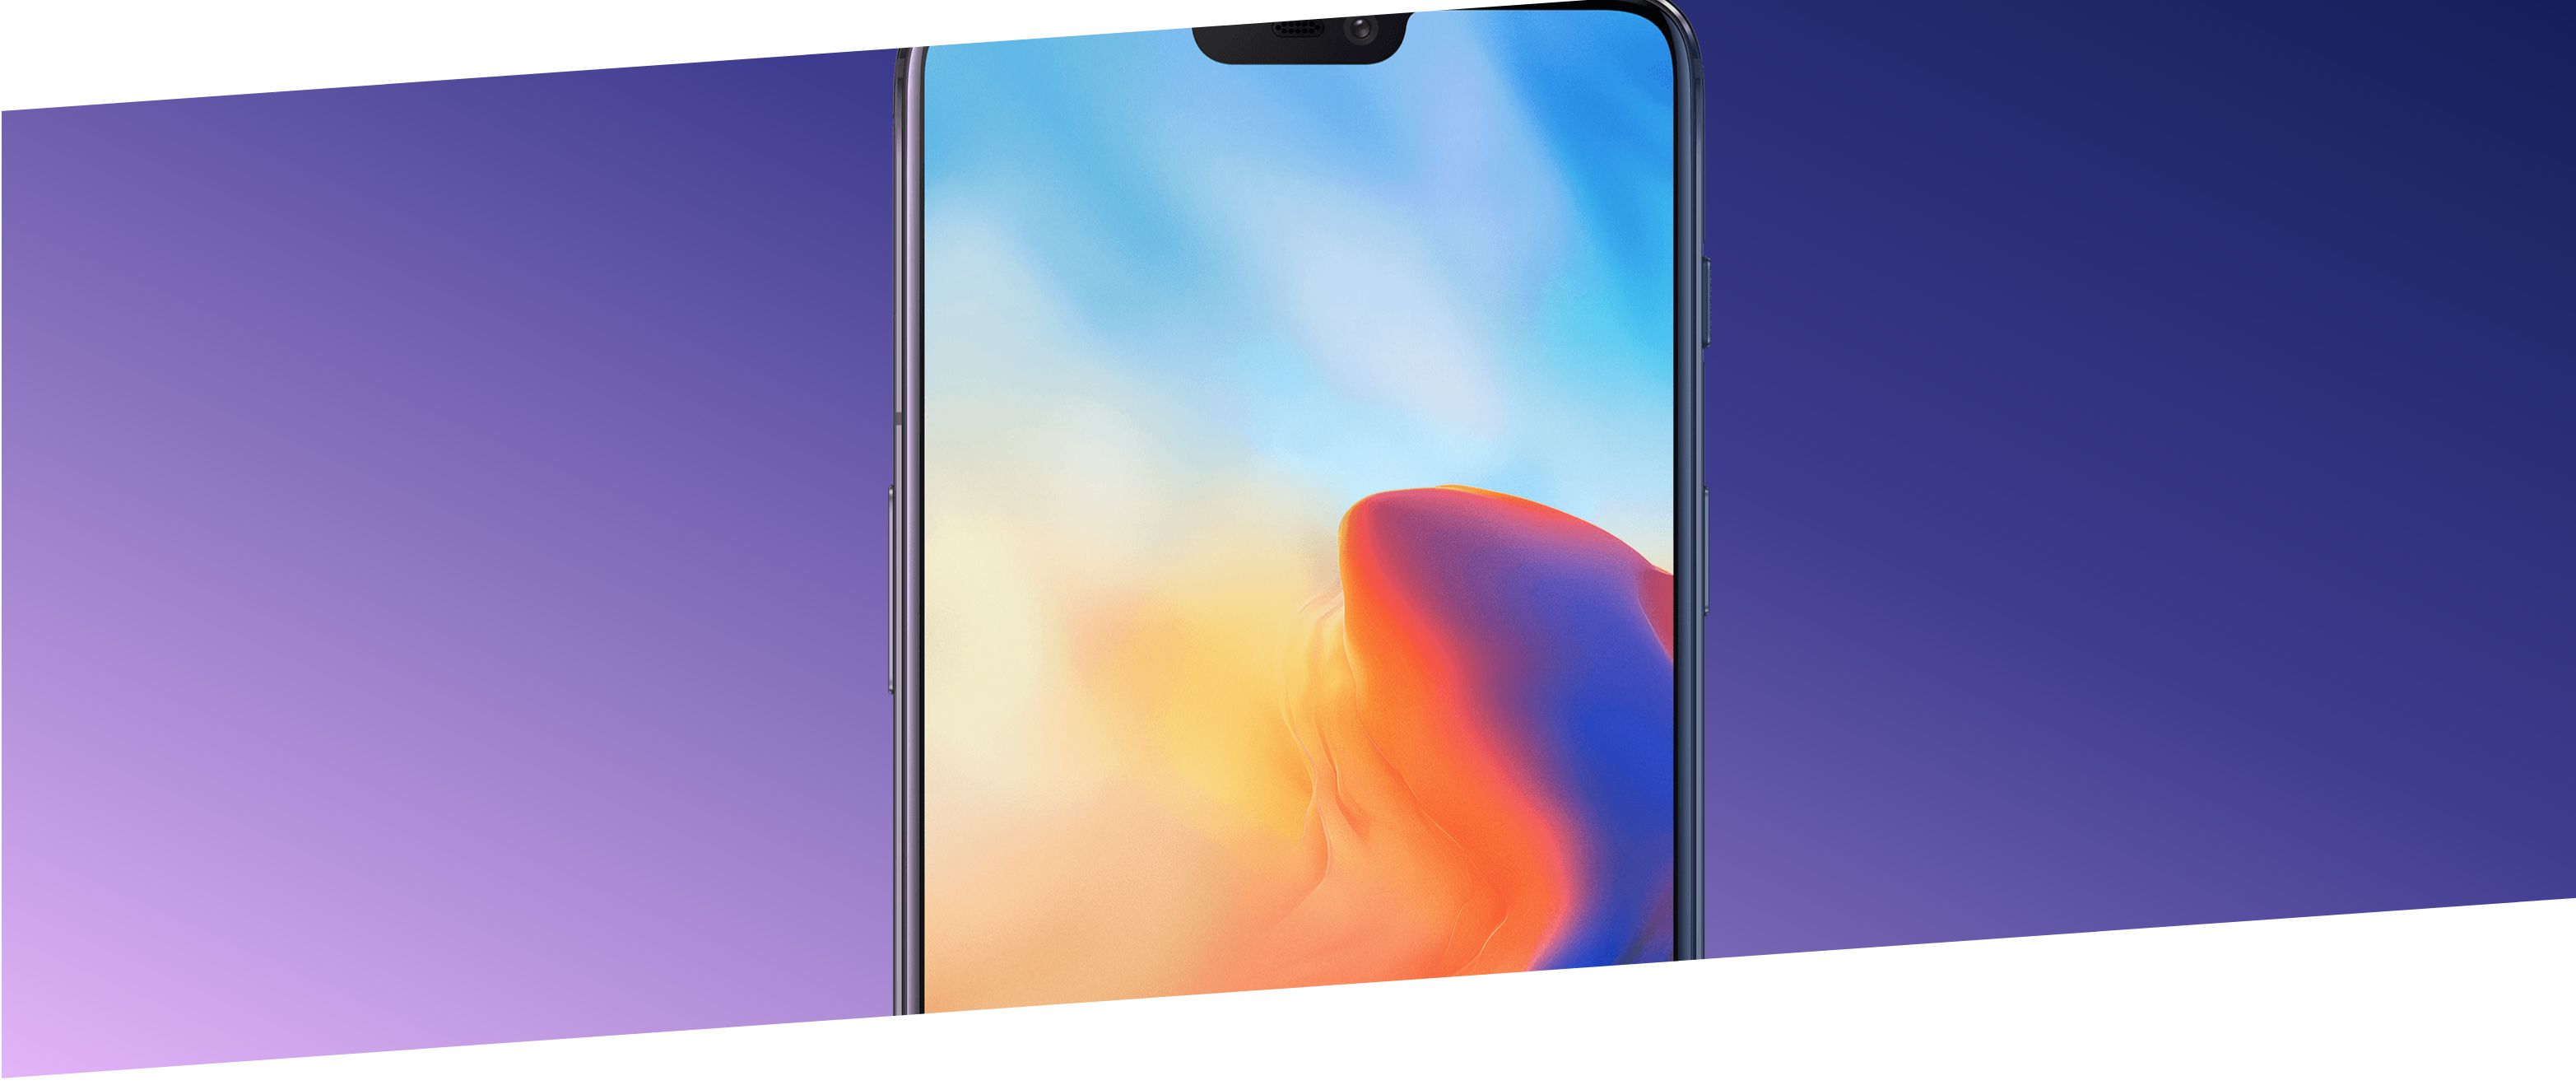 OnePlus 6 smartphone with a colorful screen on a purple background